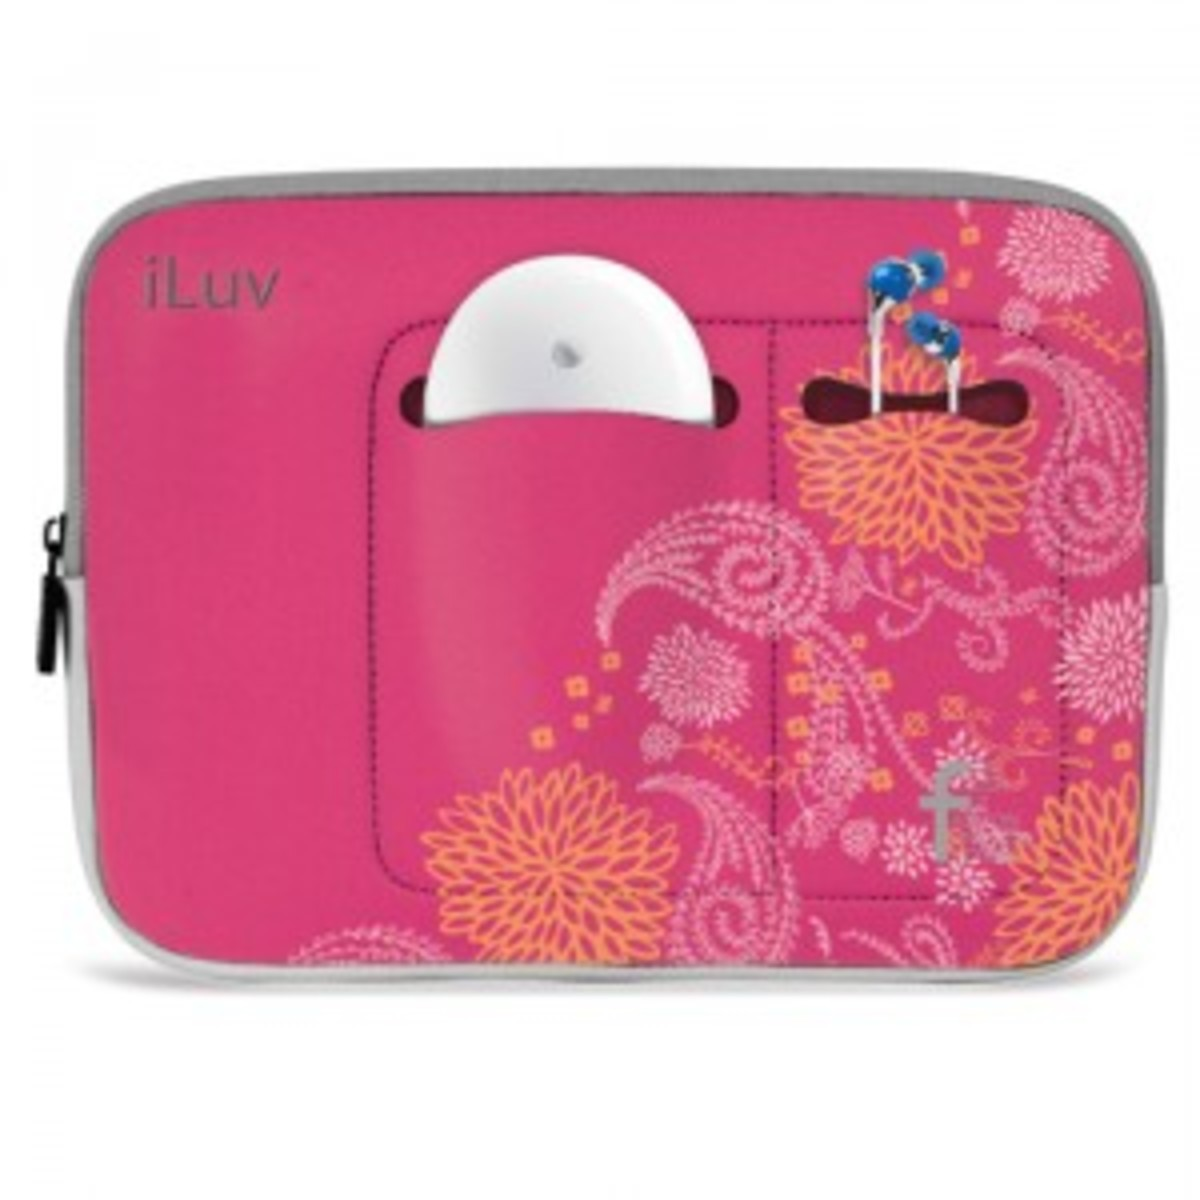 iluv iPad Purse in Pink